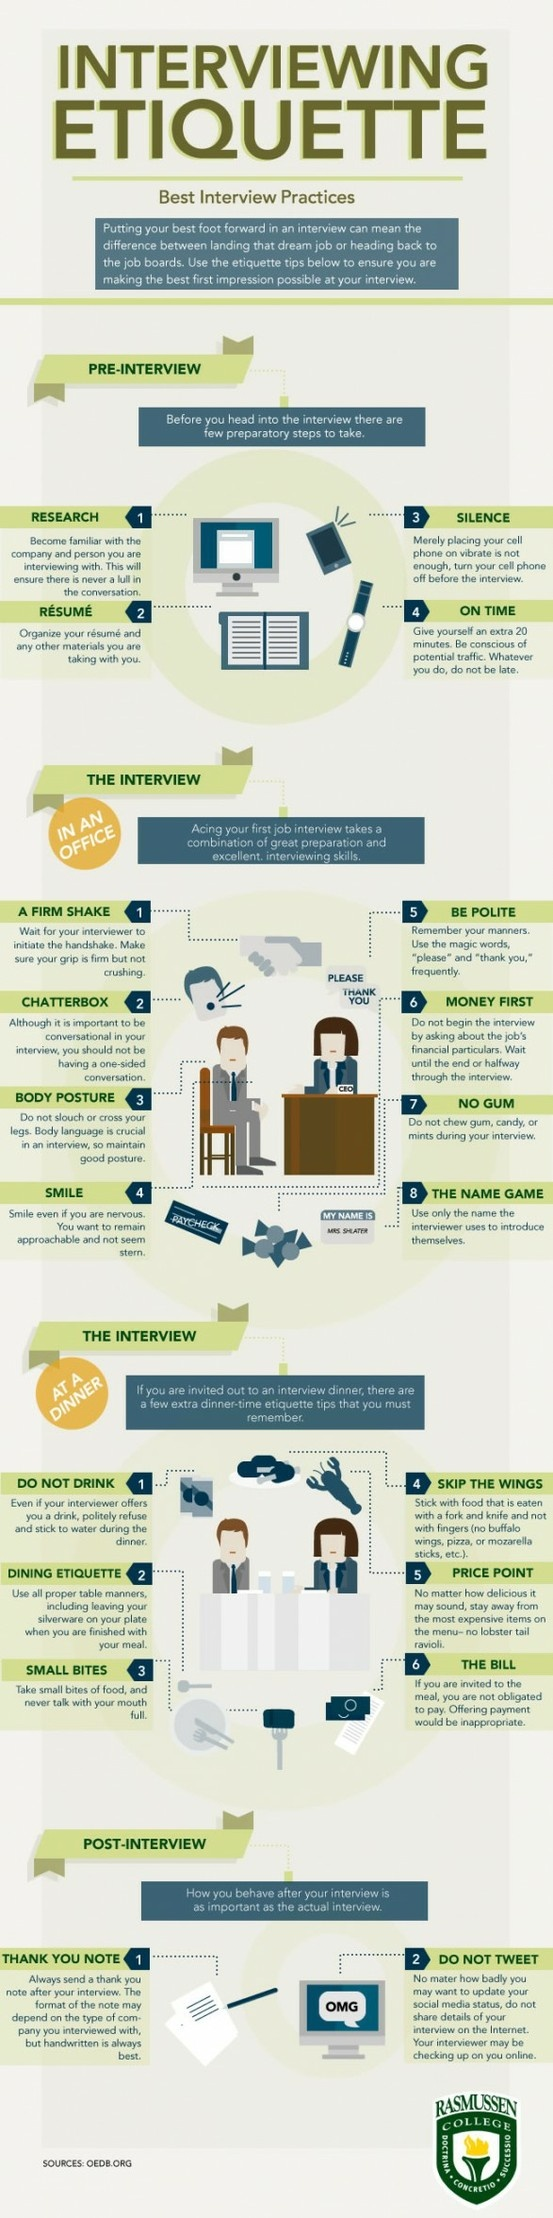 best images about interviewing tips interview i picked this one because it tells you how to use these etiquette tips for interviews to ensure you are making the best impression possible to your